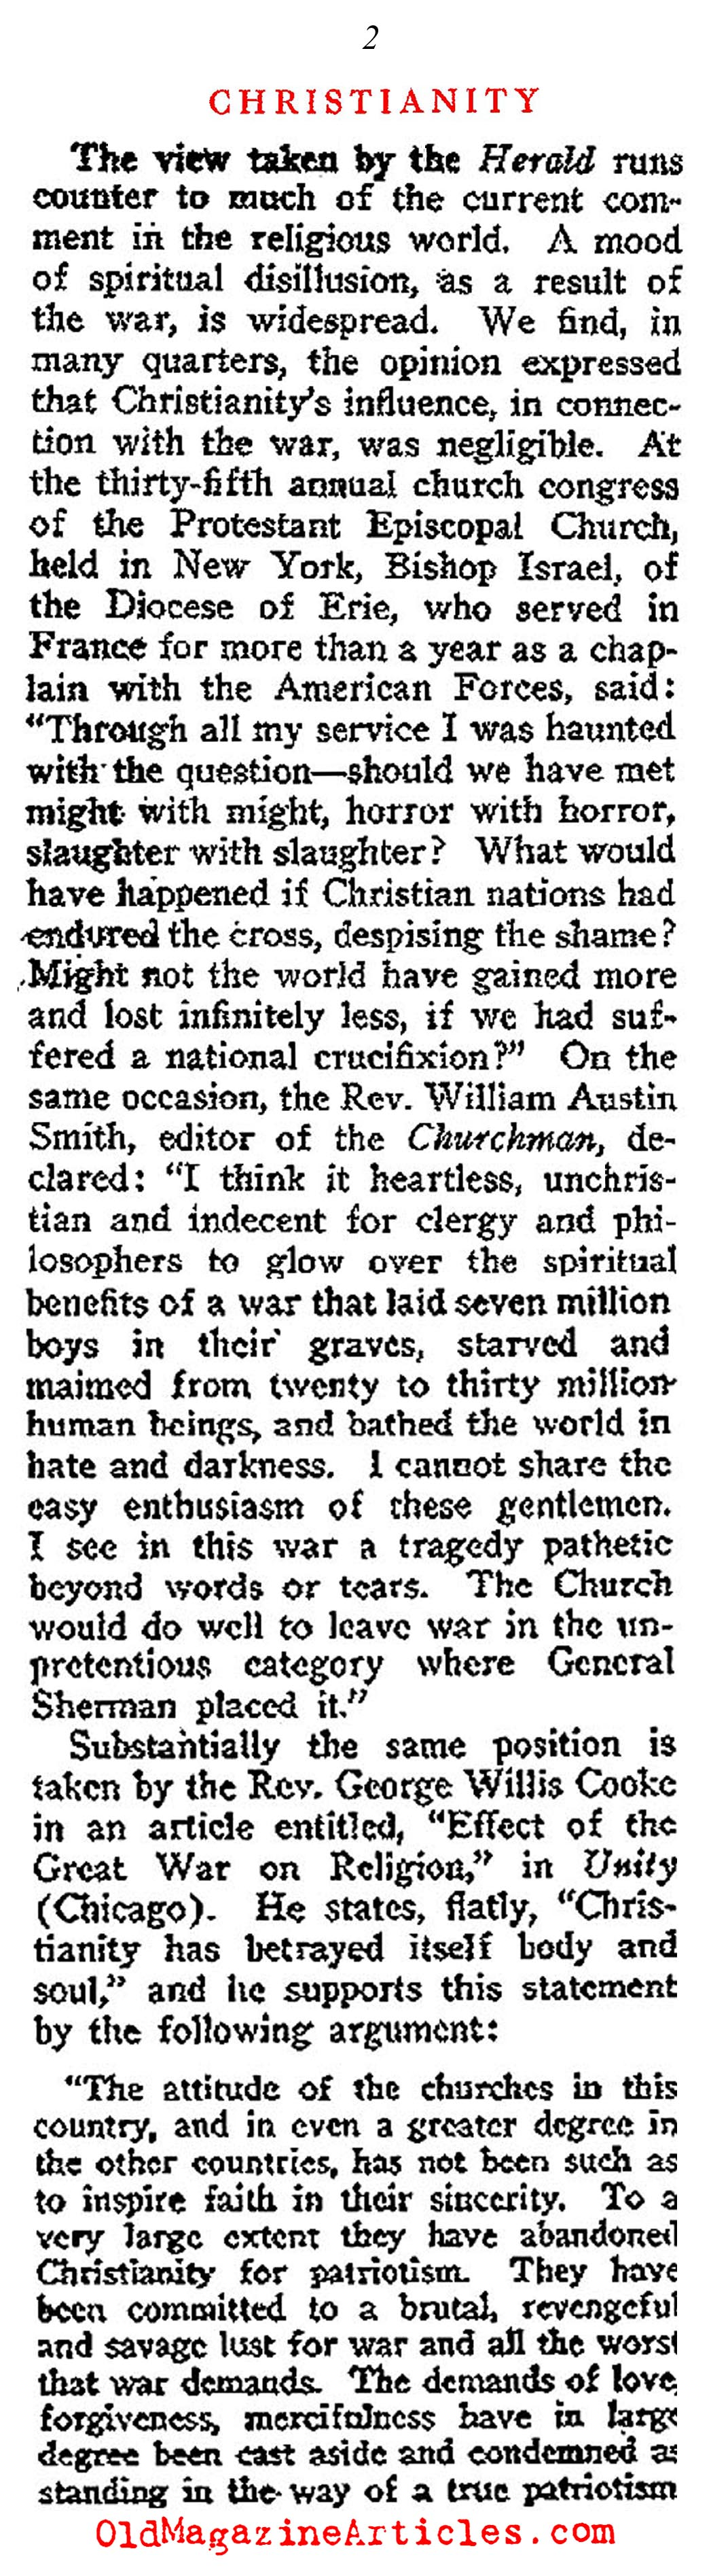 The Spiritual Disillusion of the 1920s (Current Opinion, 1919)